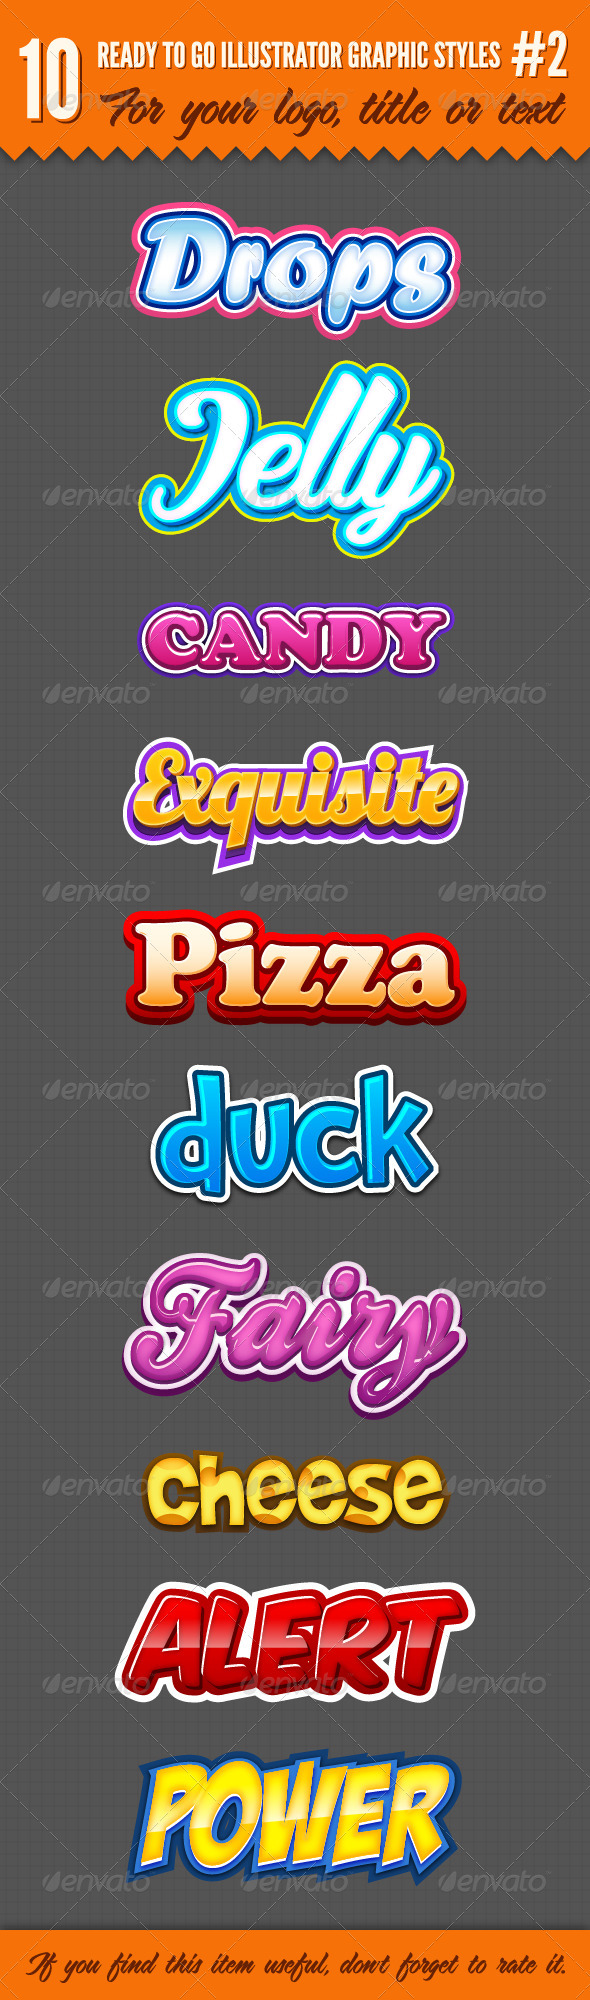 GraphicRiver 10 Logo Graphic Styles #2 3882598